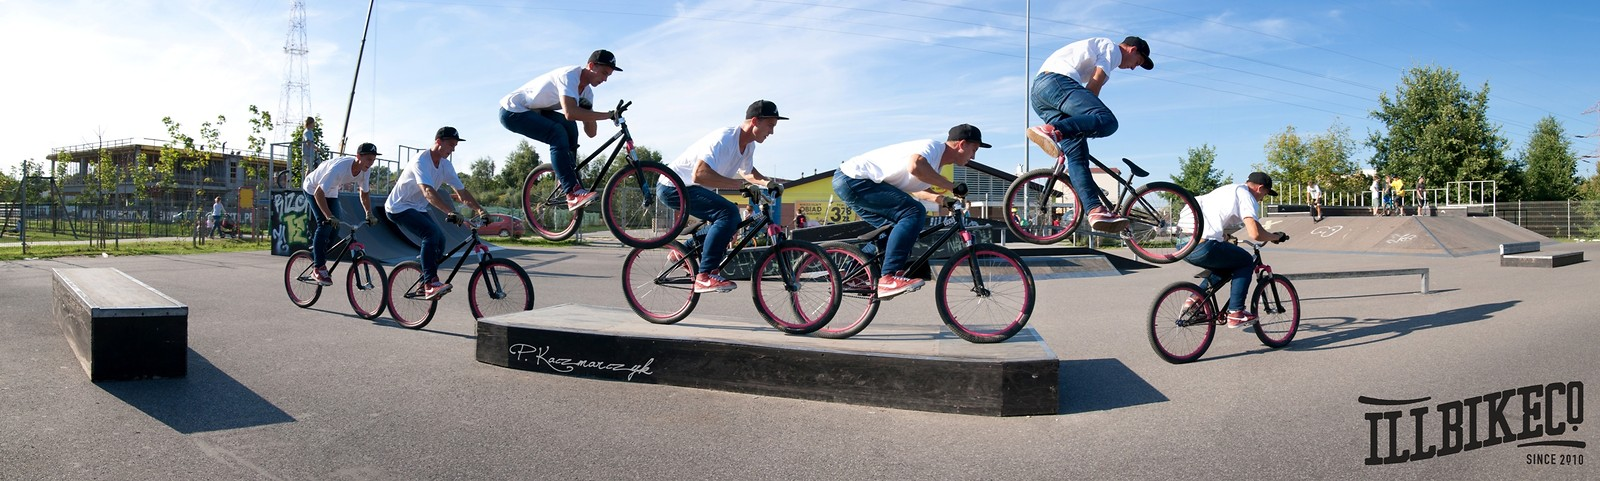 Barspin and tailwhip Sequence - piotrkaczmarczyk - Mountain Biking Pictures - Vital MTB